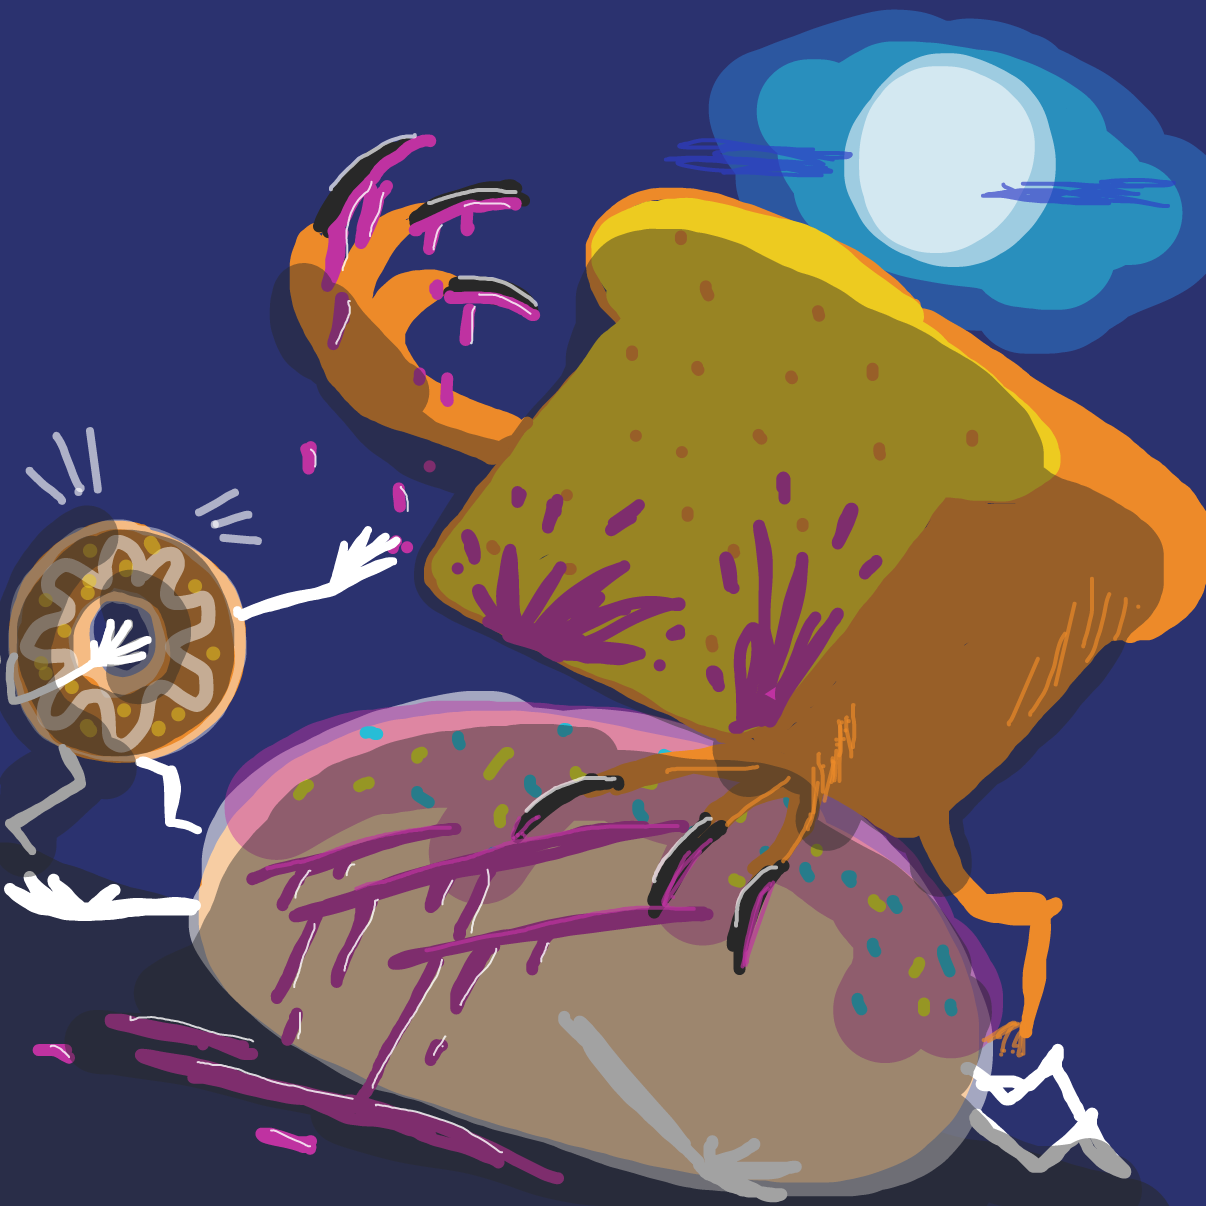 First panel in The Curse of the Were-loaf drawn in our free online drawing game